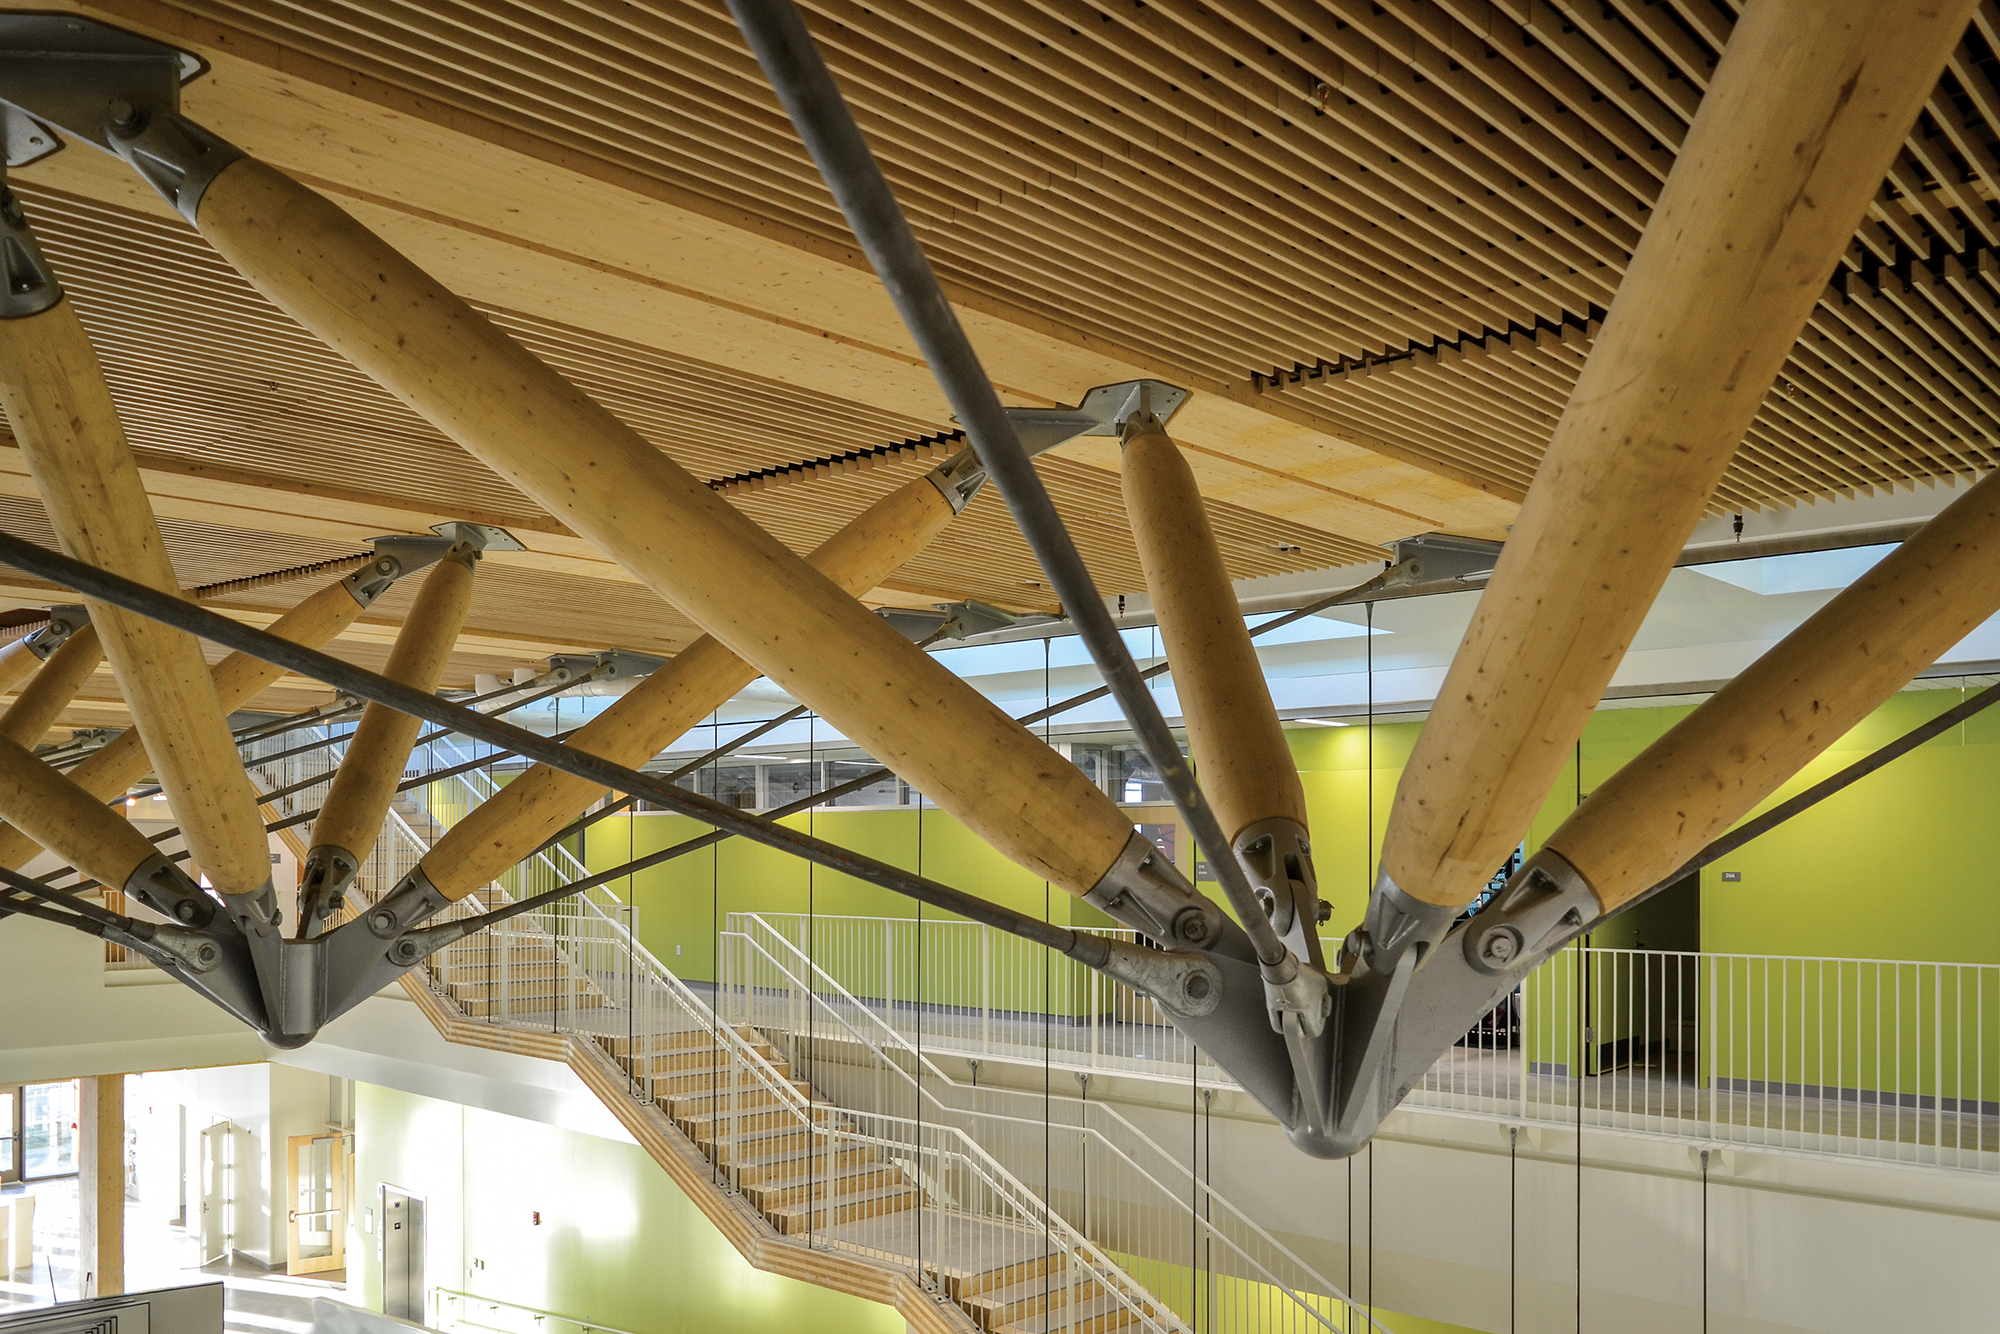 Umass Amherst Design Building Zipper Trusses Architect